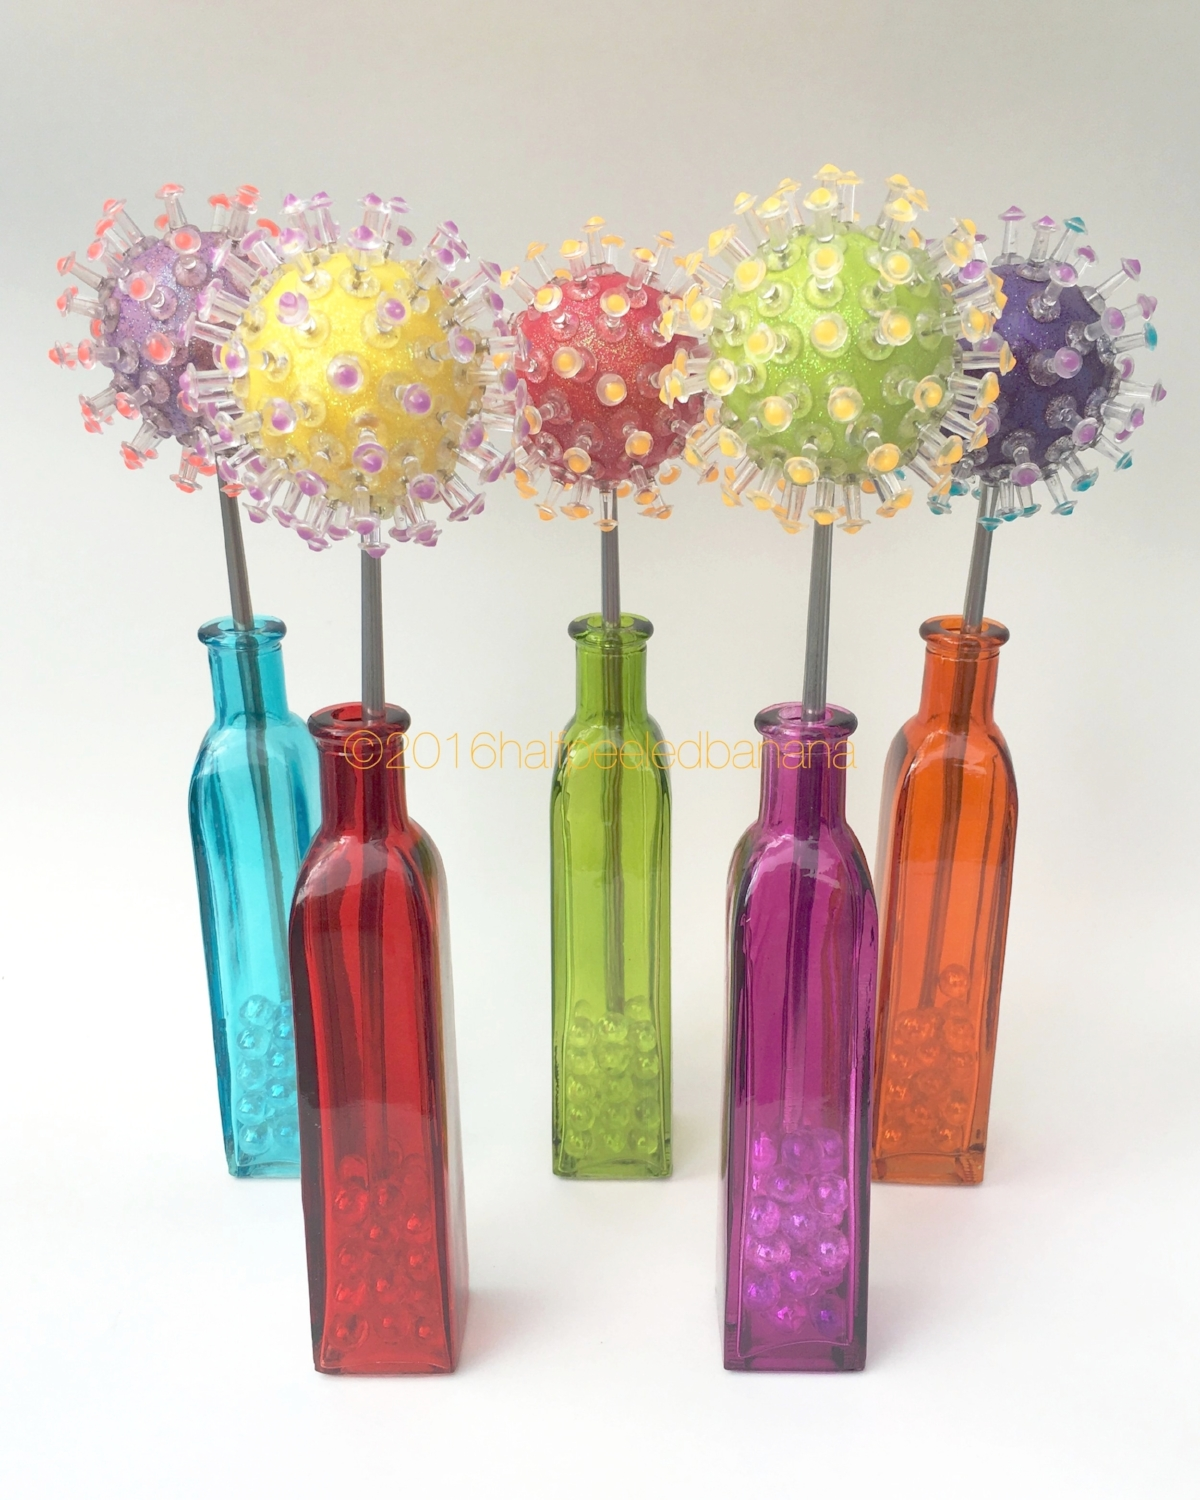 fun & funky for your home or office - push pin flowers!